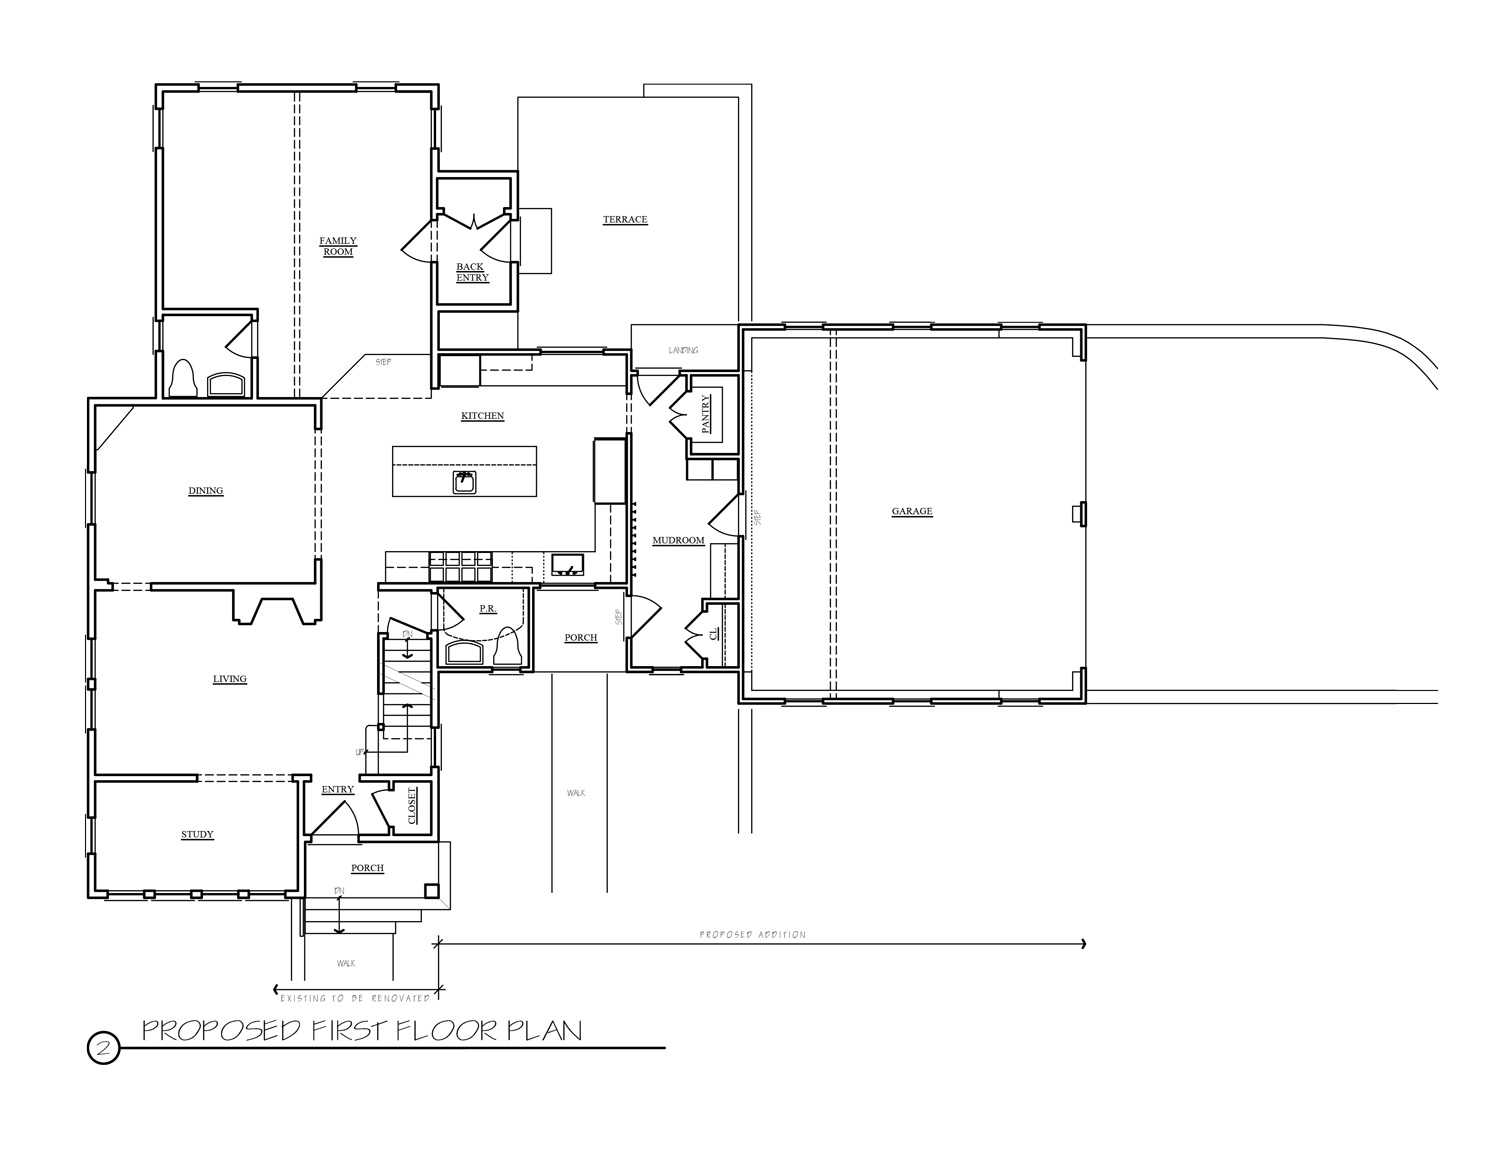 5_Proposed-First-Floor-Plan.jpg